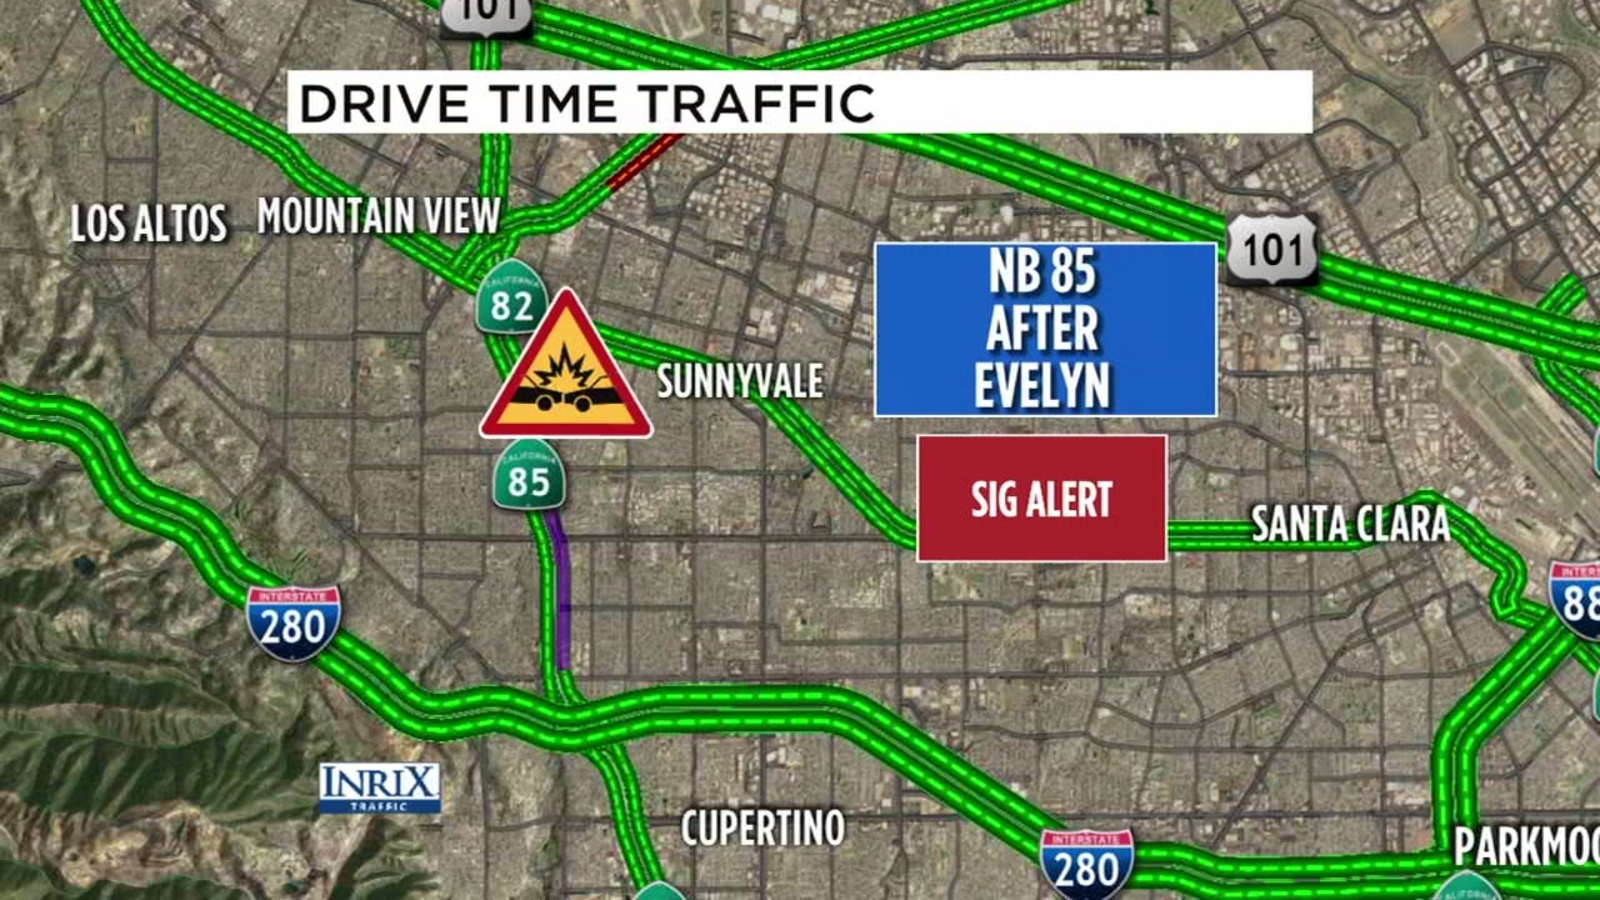 2 dead in wrong-way crash on Hwy 85 in Mountain View